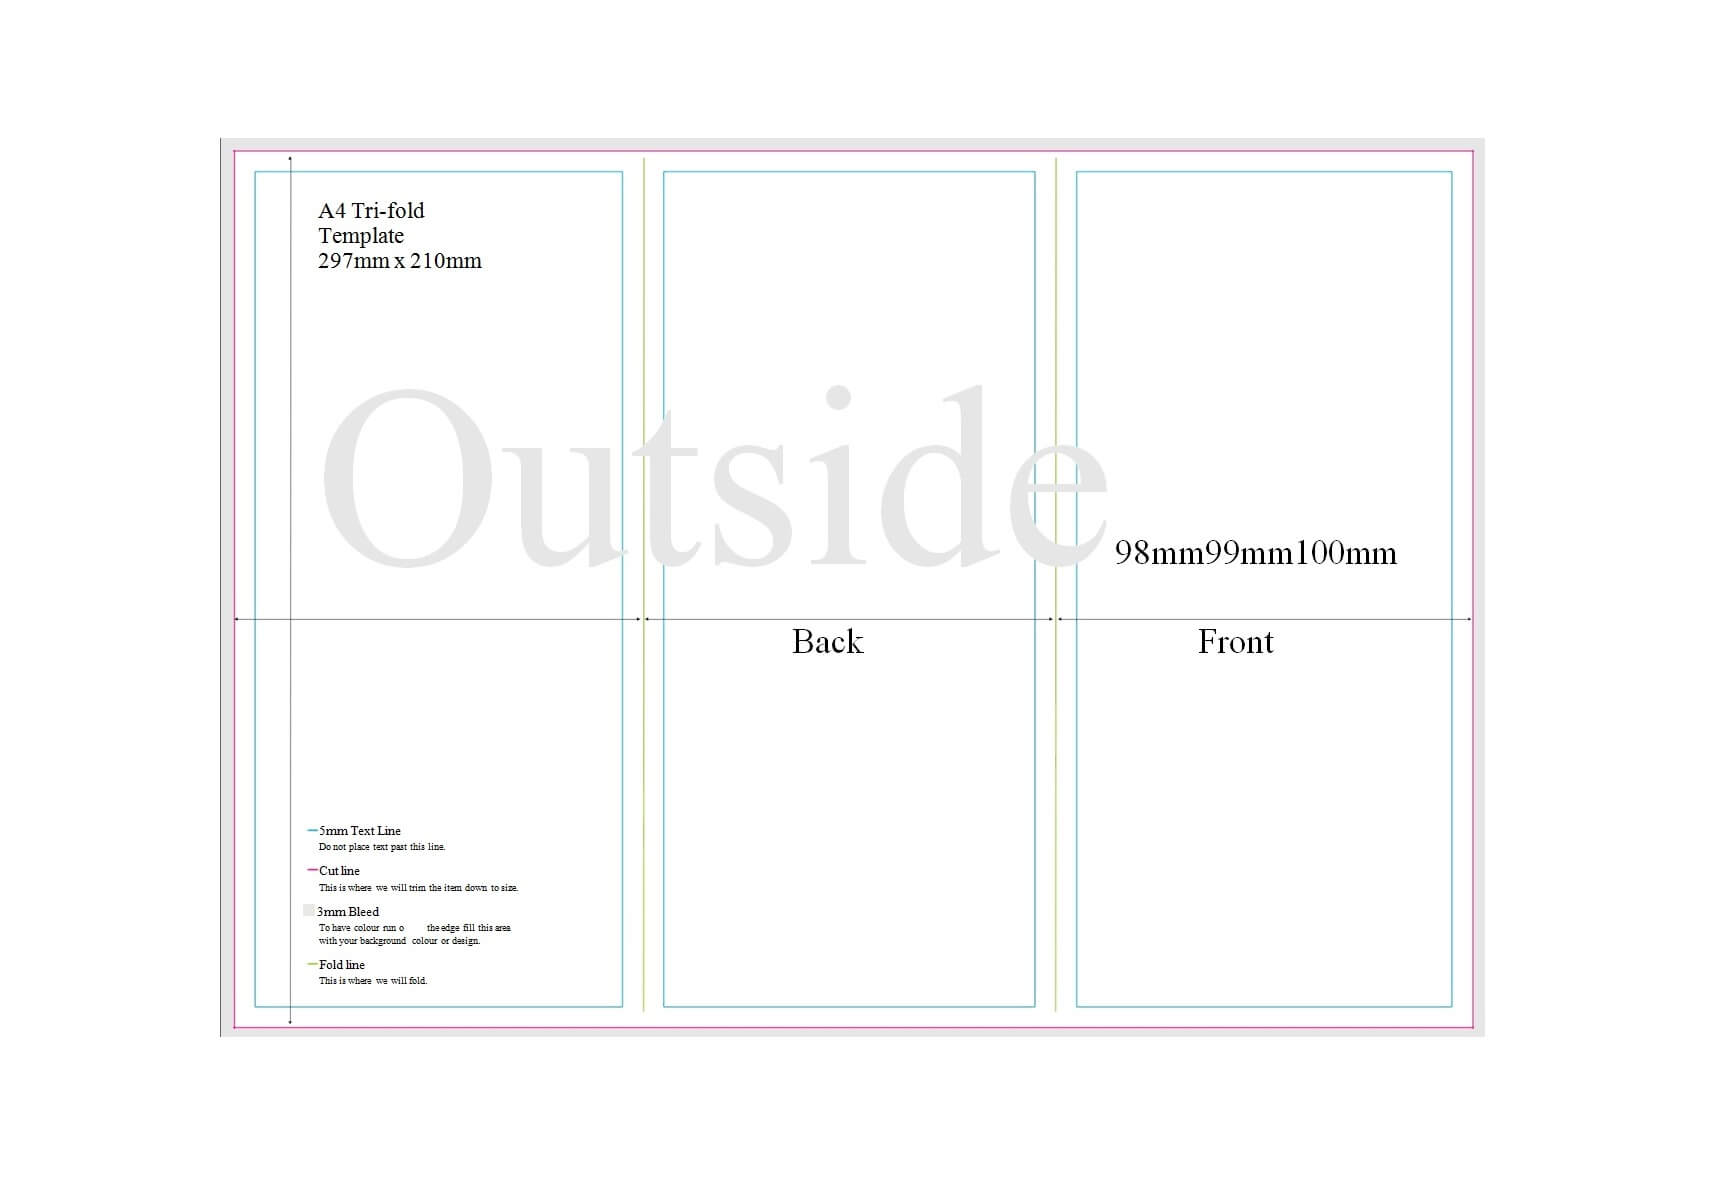 029 Tri Fold Brochure Template Google Docs Free Ideas For Google Docs Tri Fold Brochure Template